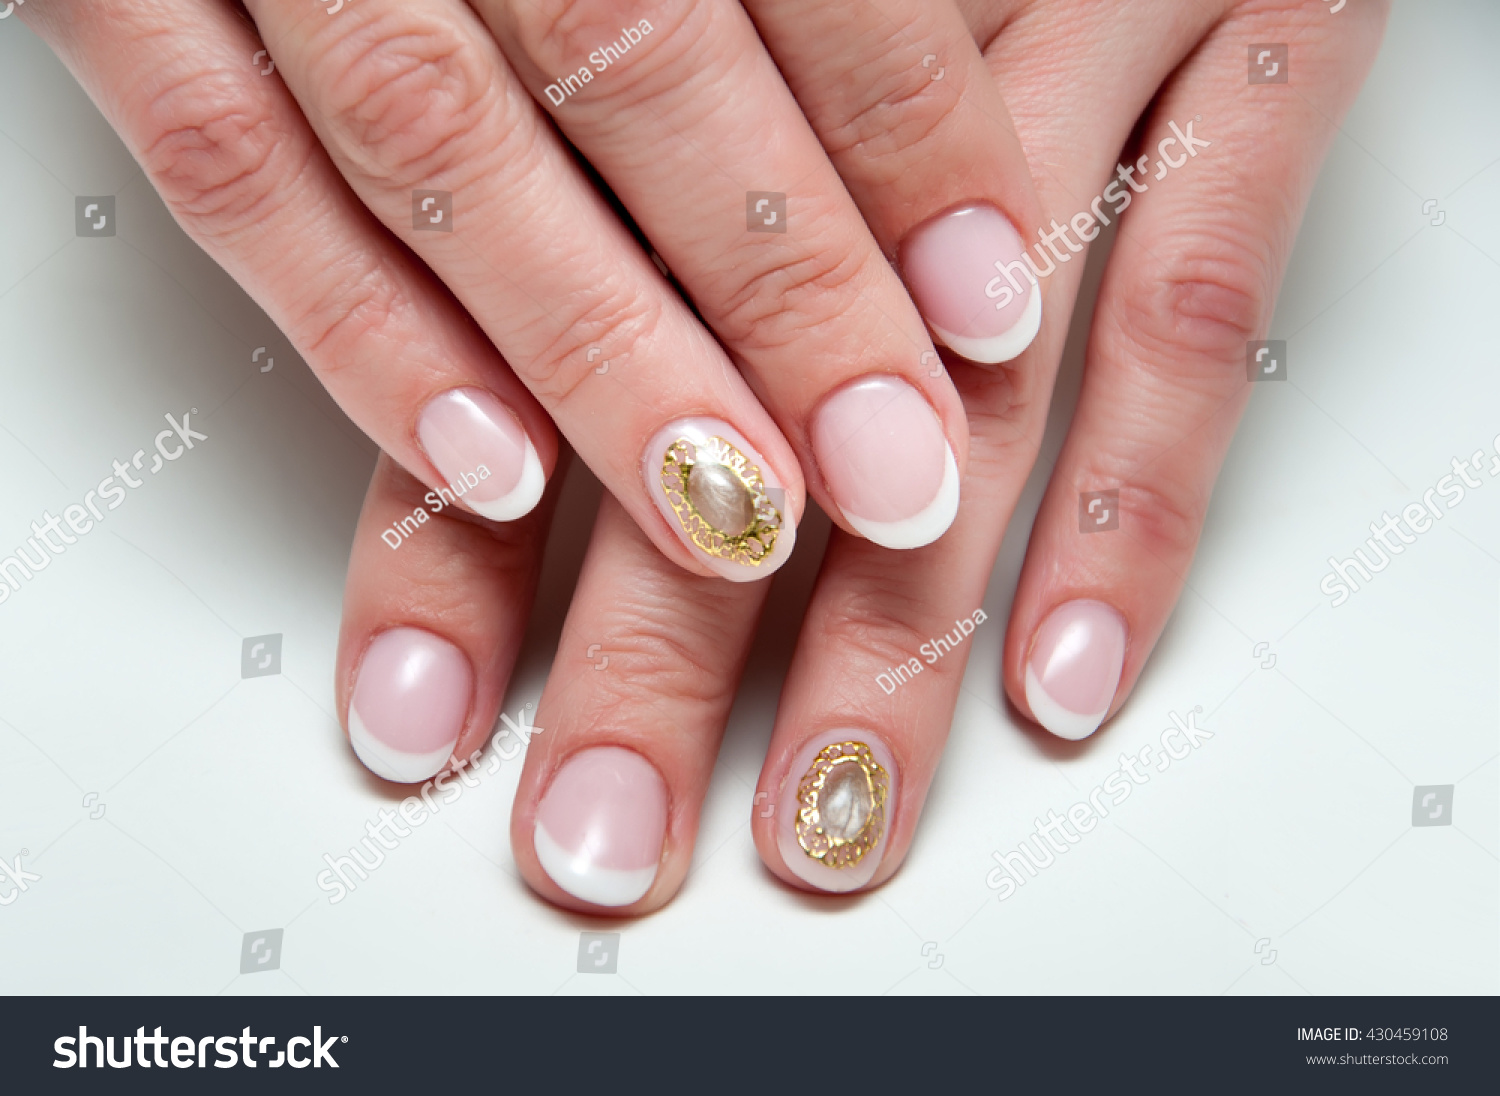 wedding french manicure with liquid stone cameo brooch on the ring ...